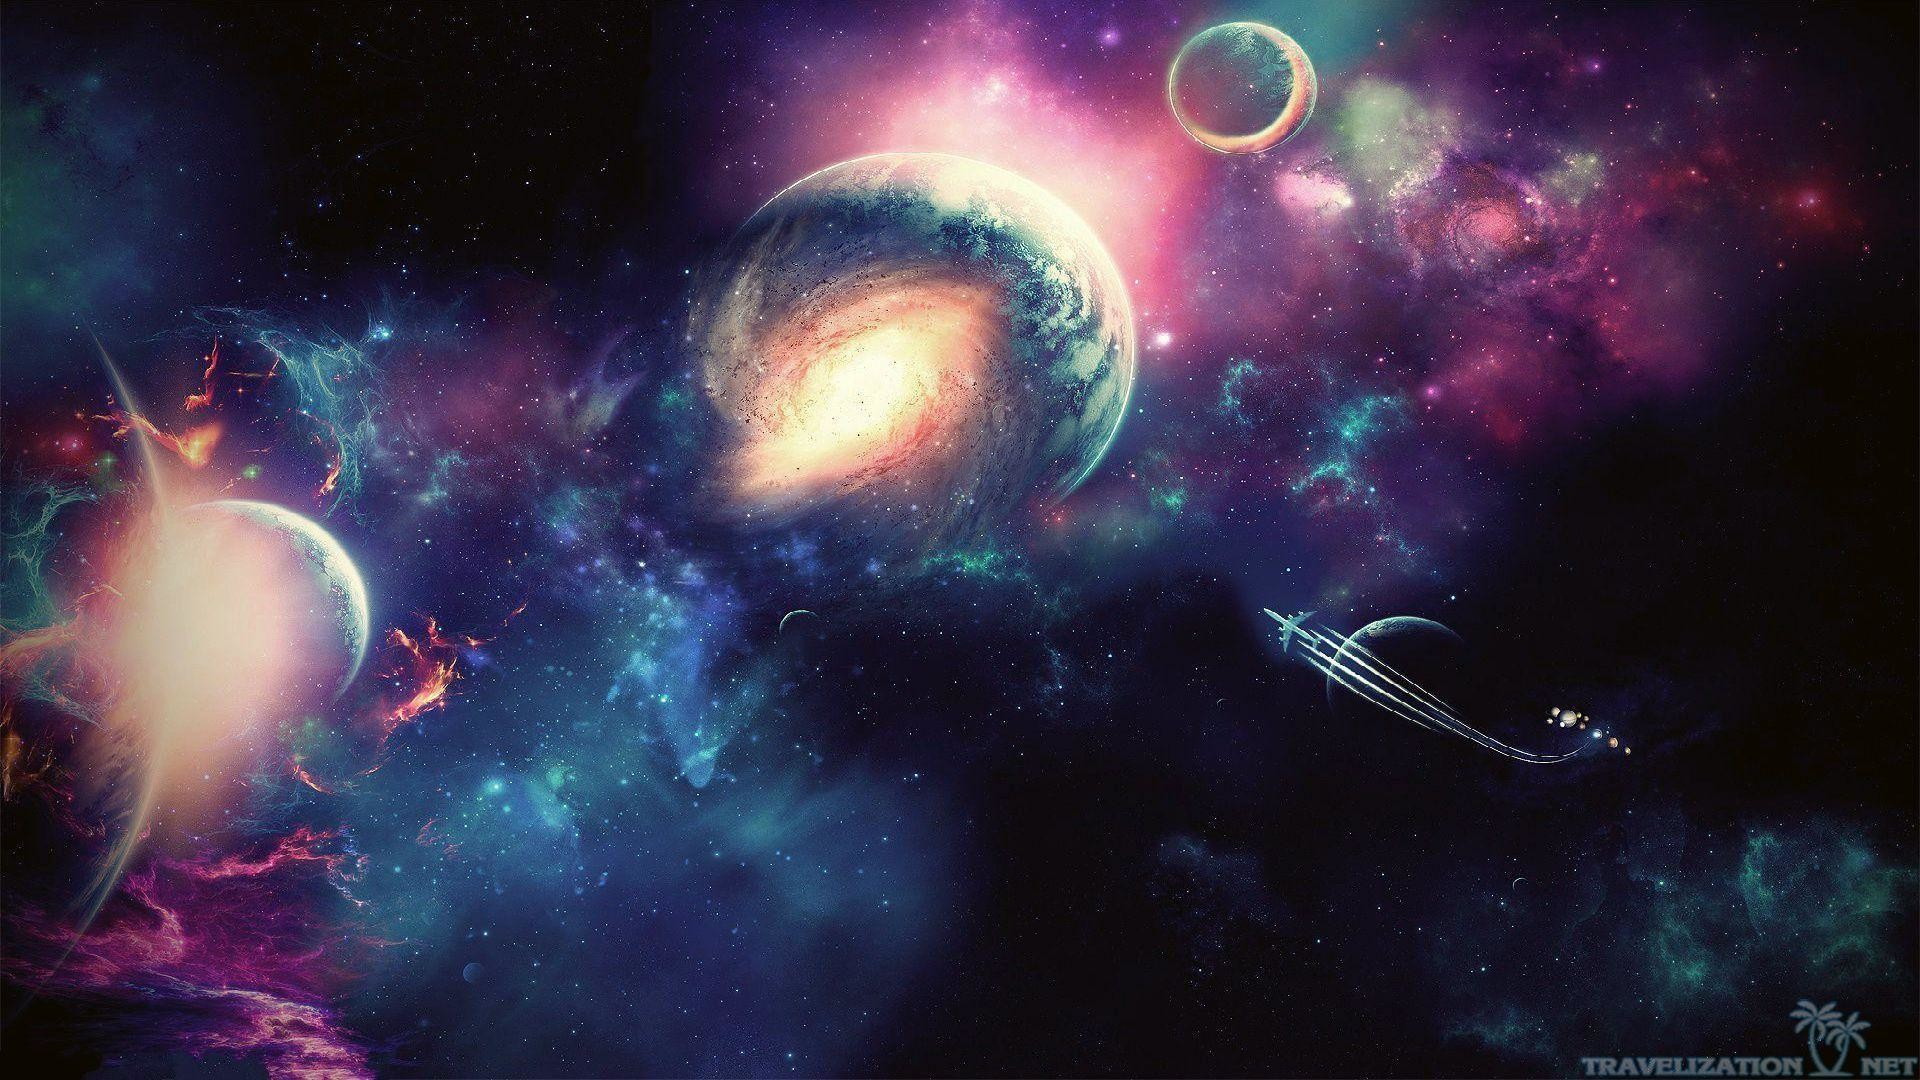 Wallpapers For > Awesome Space Wallpapers Hd